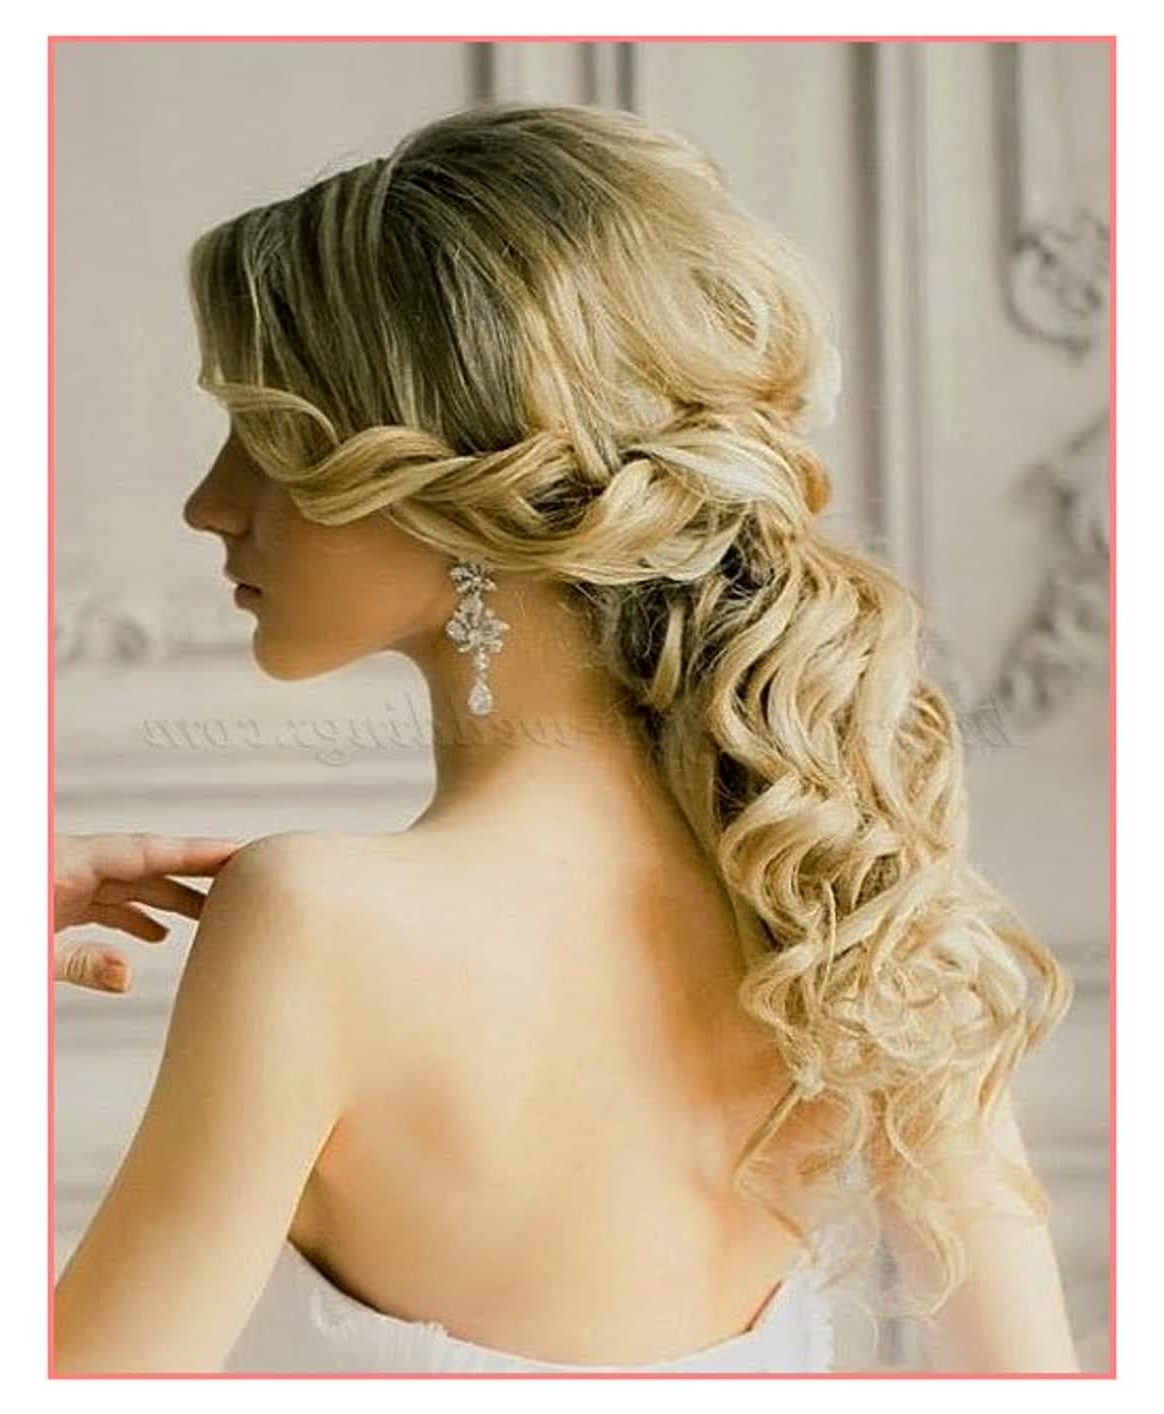 Wedding Hairstyles For Medium Thin Hair: 15 Ideas Of Wedding Down Hairstyles For Medium Length Hair